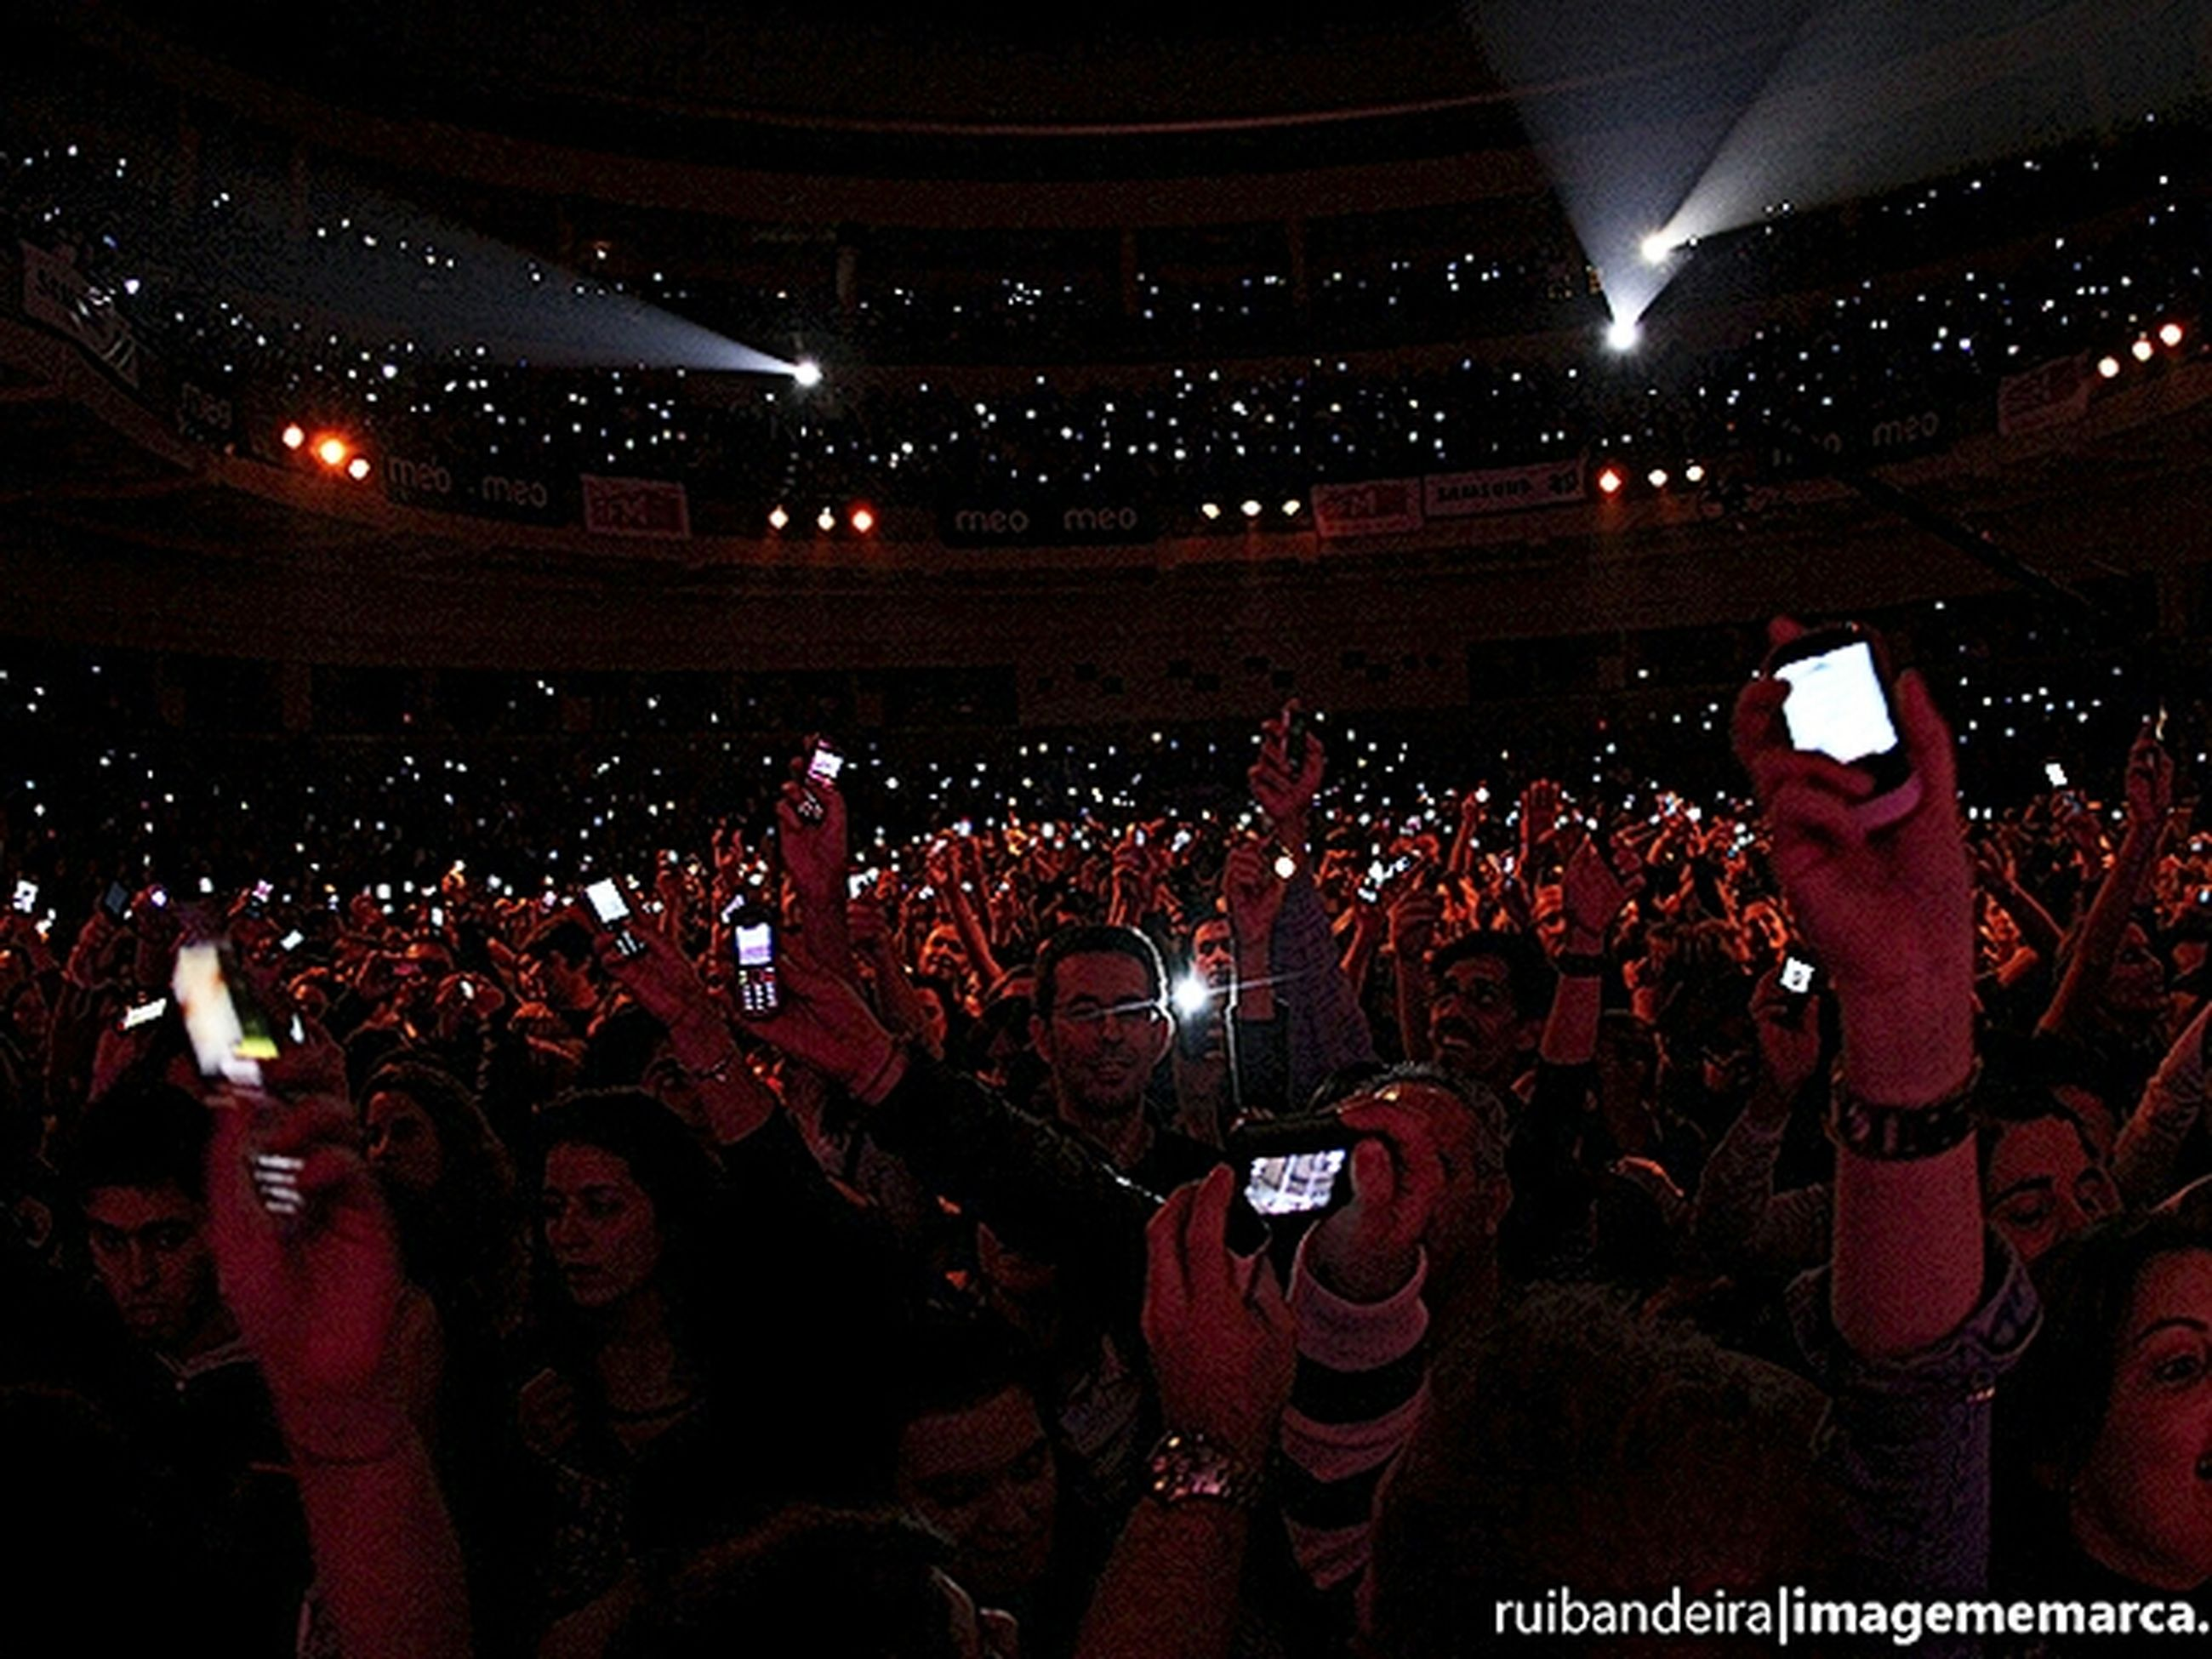 illuminated, night, lifestyles, large group of people, leisure activity, crowd, celebration, men, person, togetherness, event, arts culture and entertainment, enjoyment, standing, fun, music, performance, casual clothing